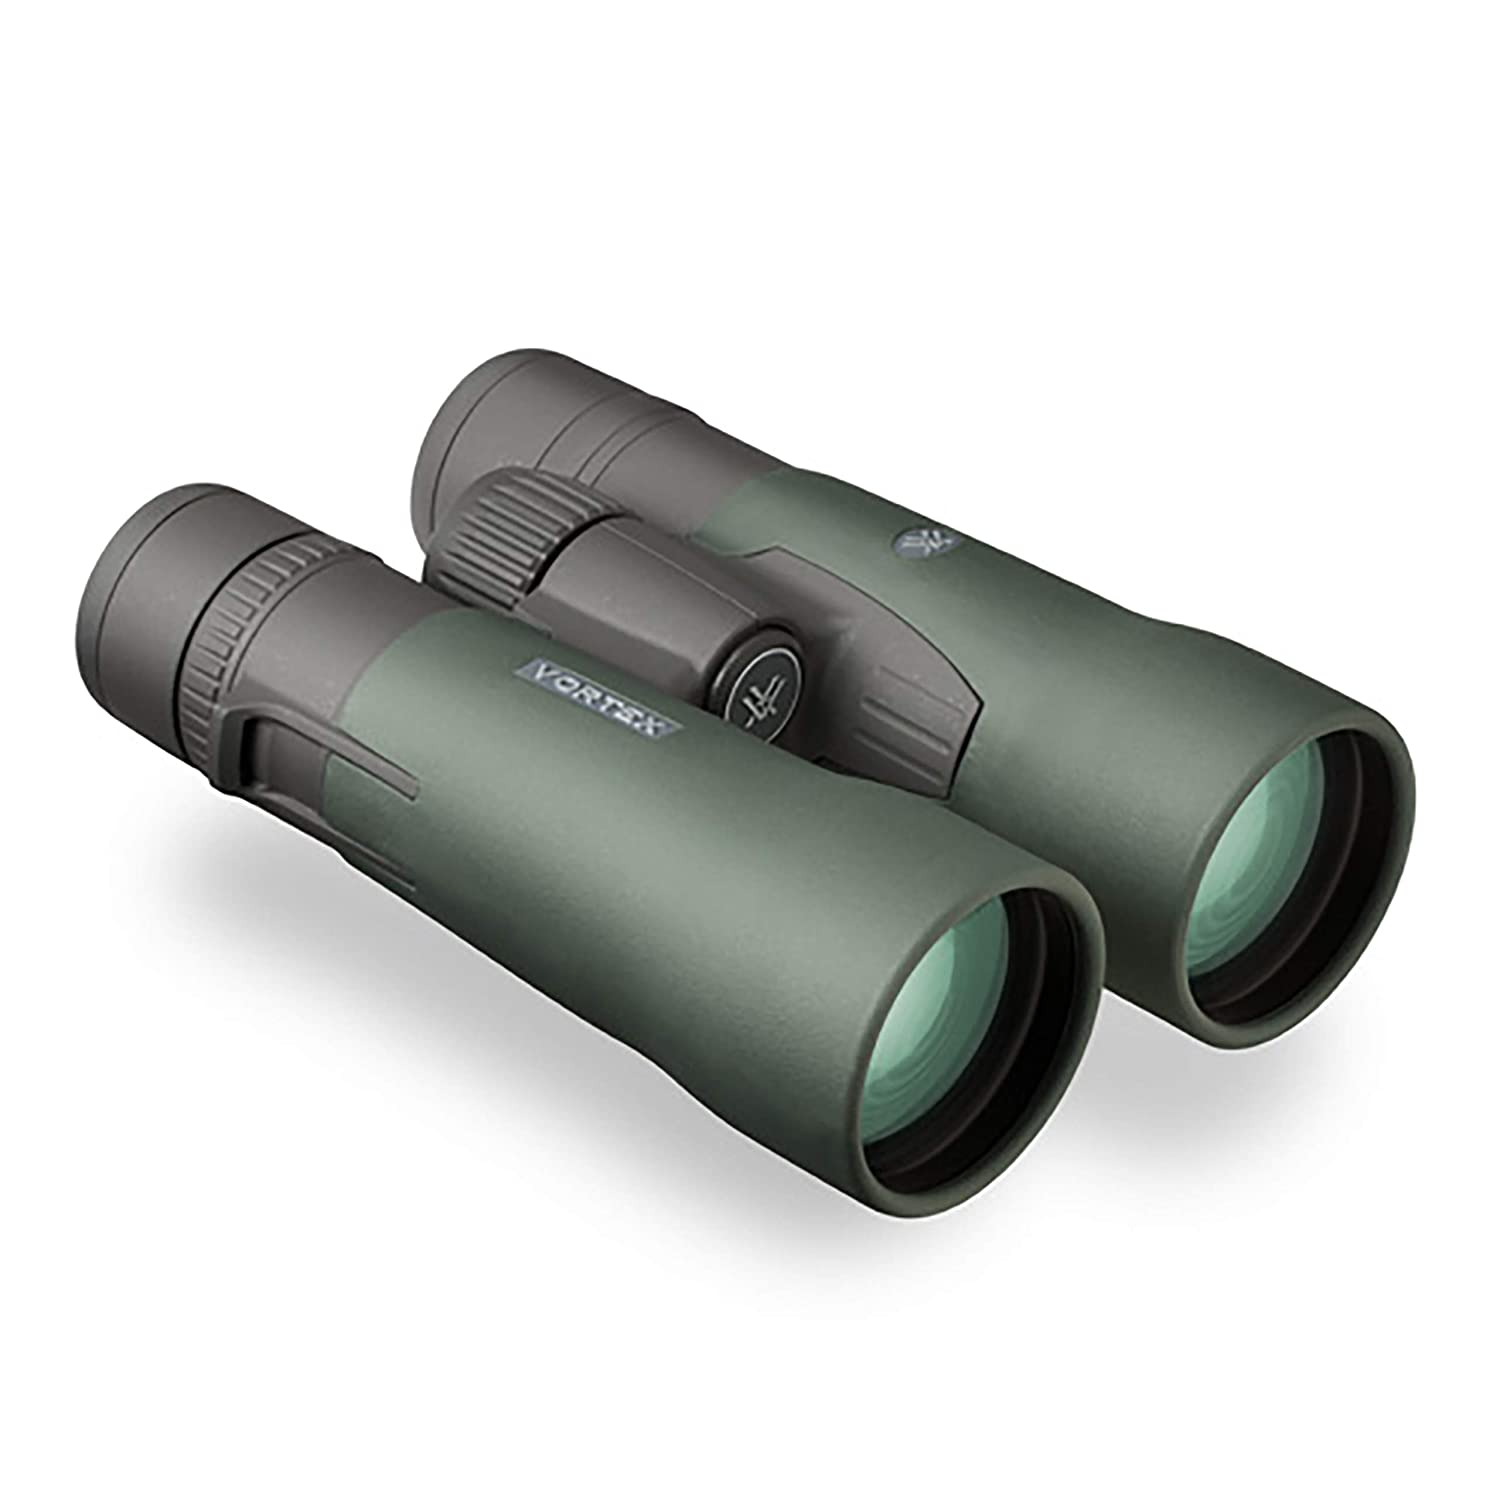 Vortex Optics RZB-2101 Razor HD 8x42 Binoculars Webyshops